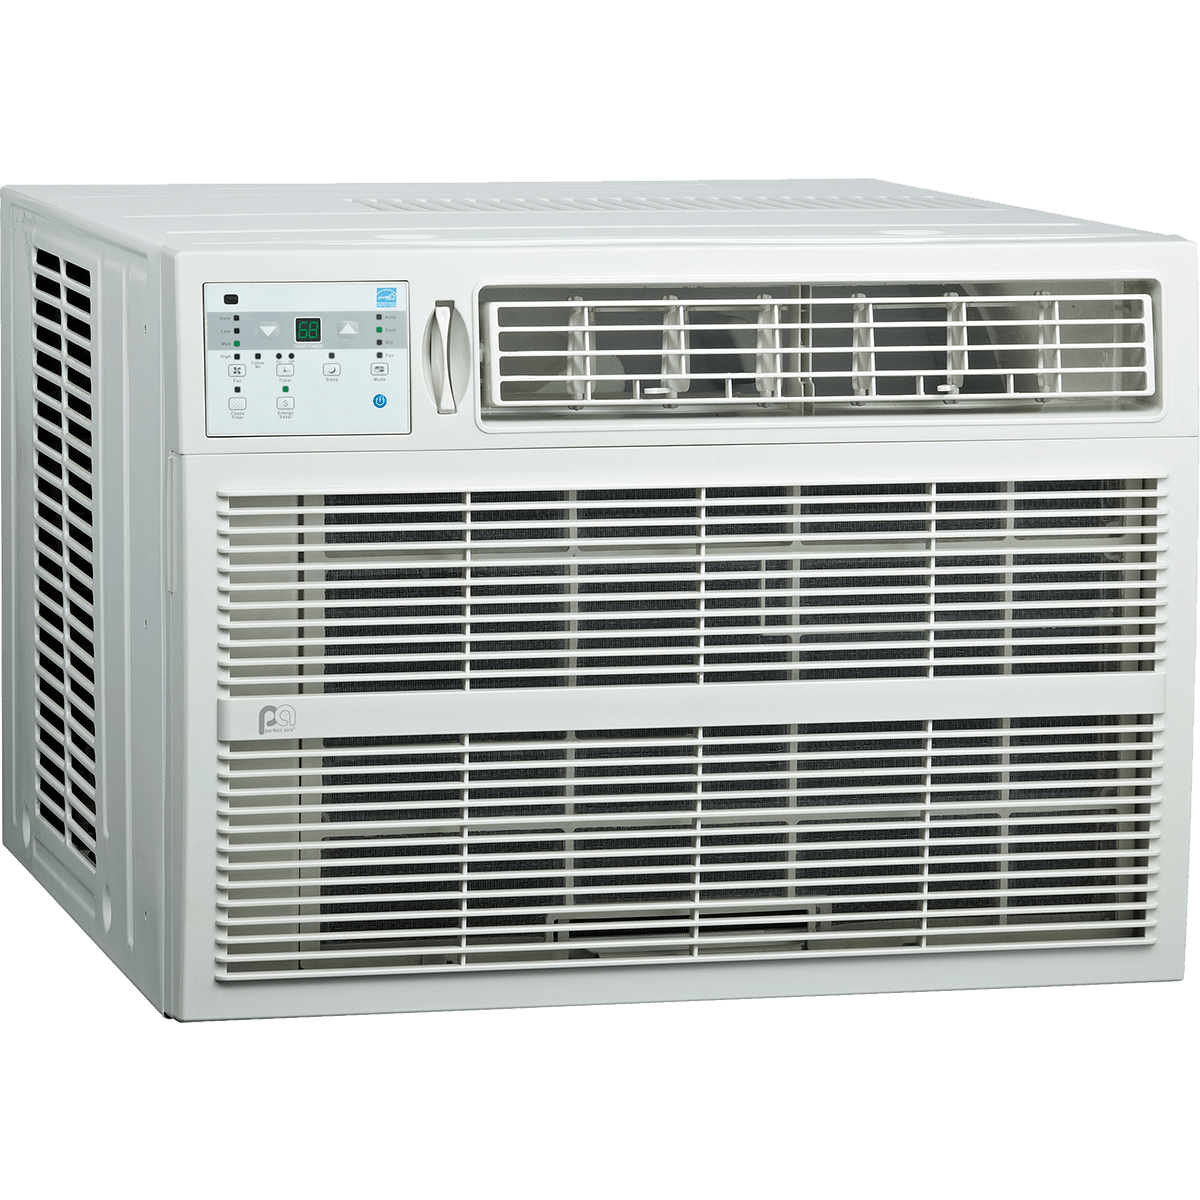 Perfect Aire 18,000 BTU Window Air Conditioner (4PAC18000)